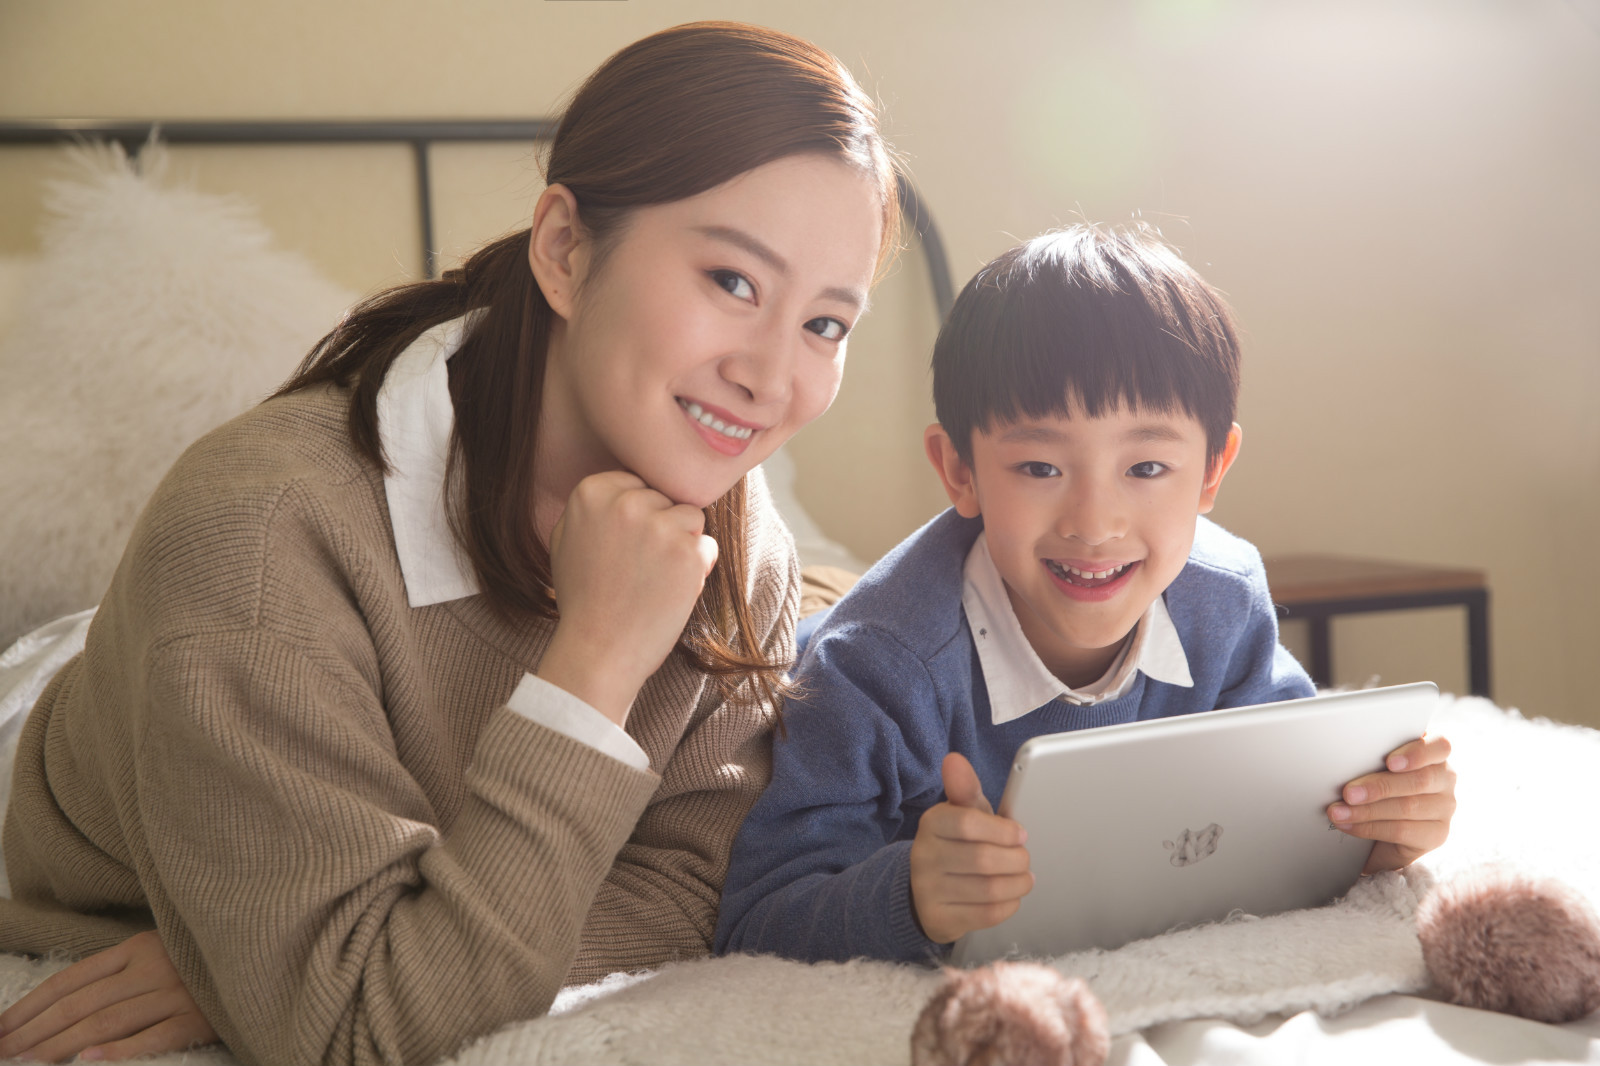 Parents can choose between our two reputable programs. Reach by National Geographic Kids and Hello English by Cambridge University. We then coupled our materials with cutting-edge technology to help students obtain their educational goals. Our classes are engaging, productive, and, above all else, fun!